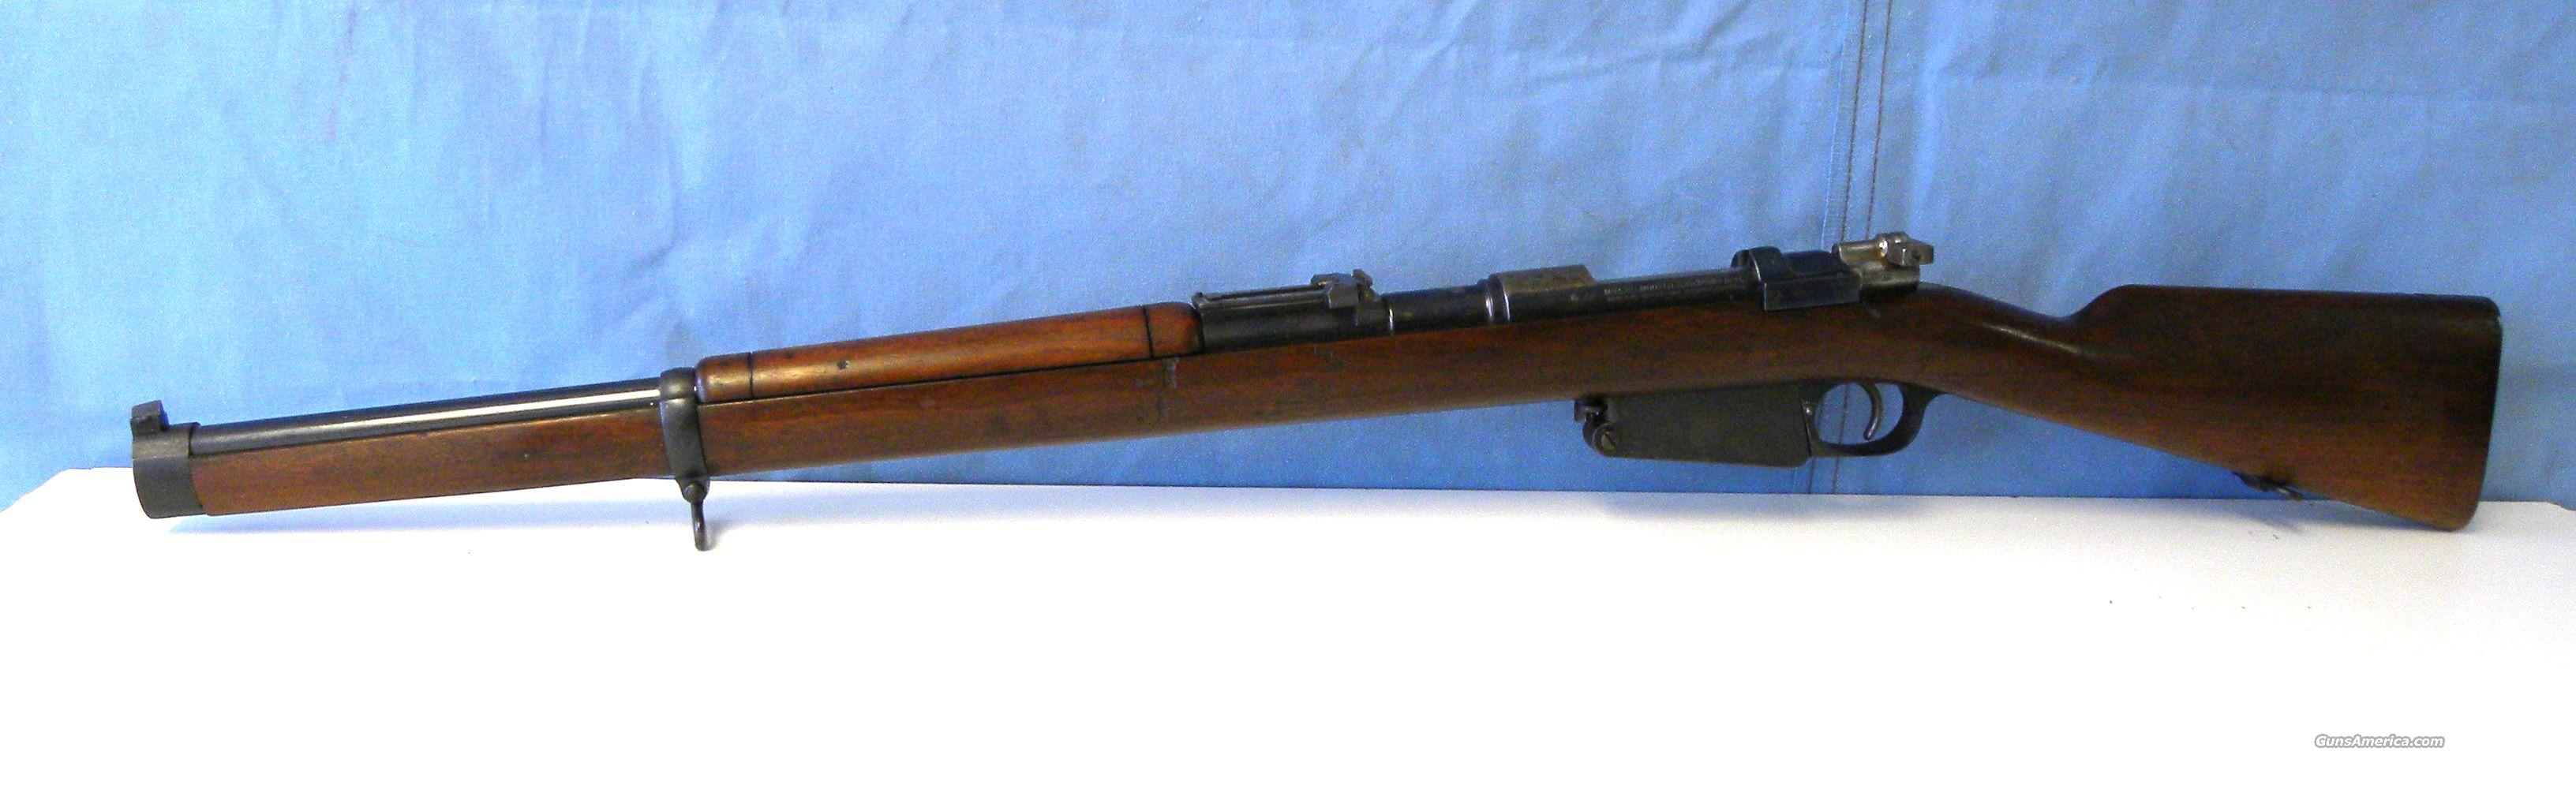 1891 Carbine Mauser DWM  Guns > Rifles > Mauser Rifles > German